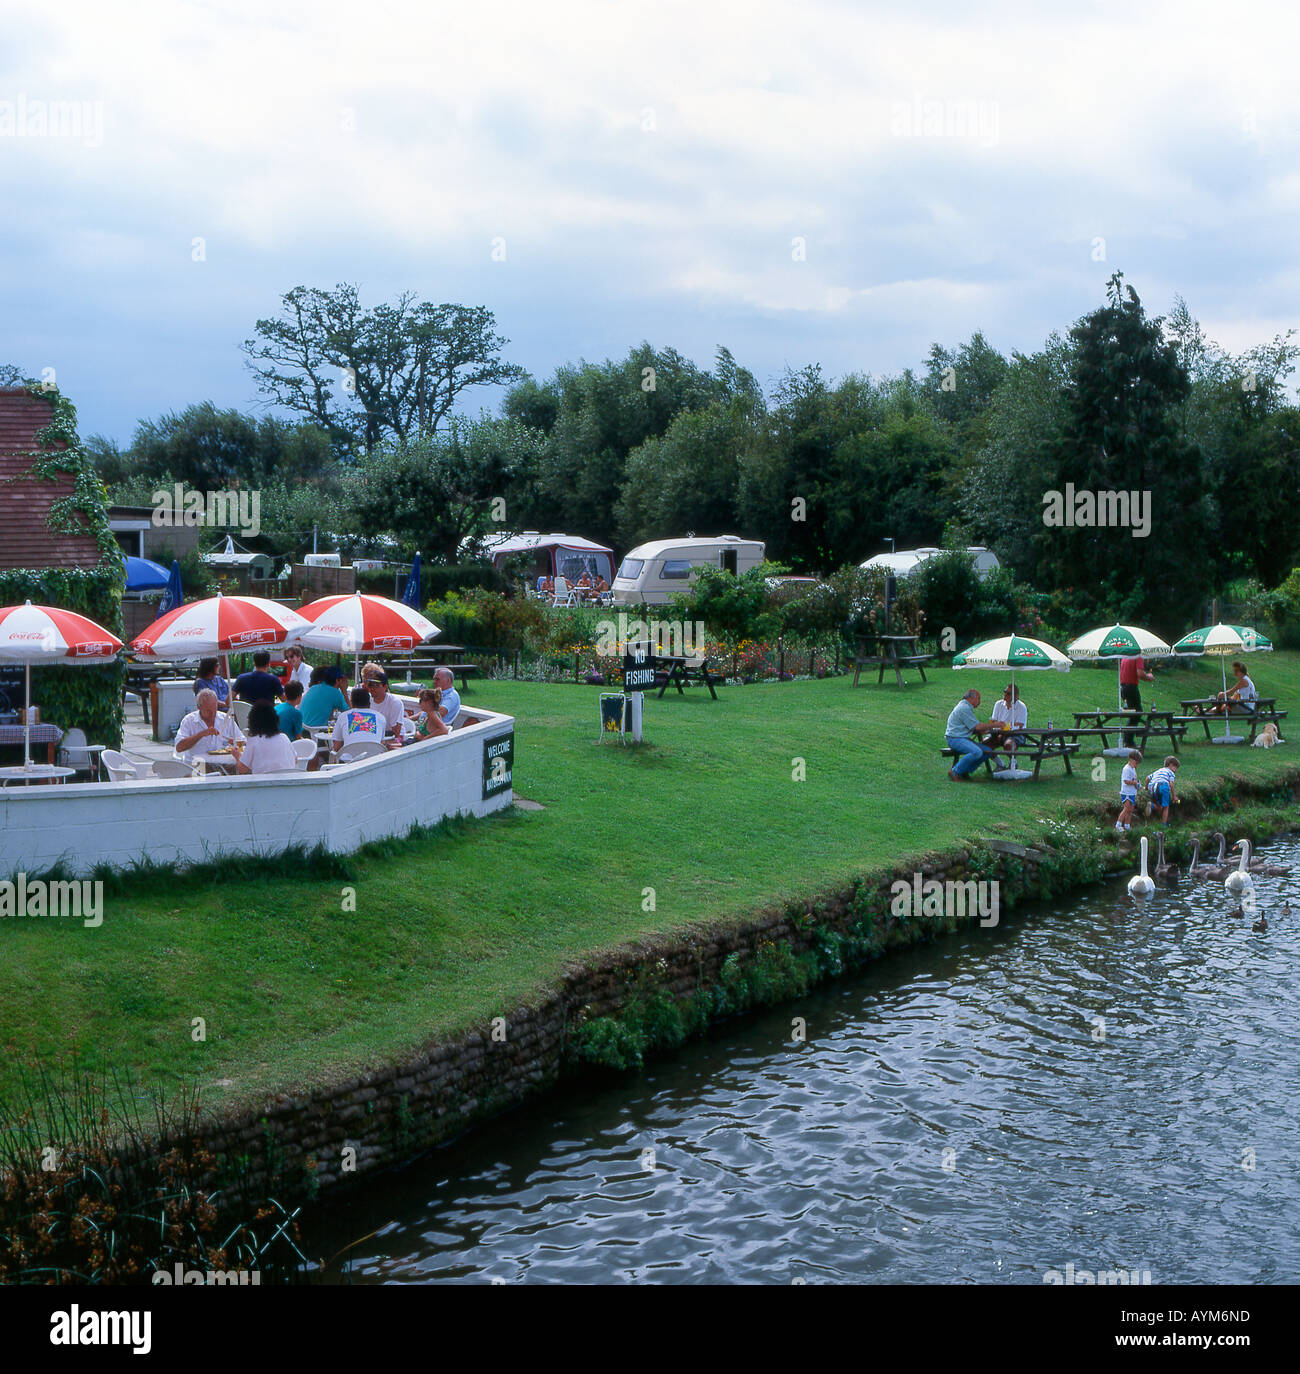 Maybush Pub garden by River Thames at Newbridge Standlake in Oxfordshire England - Stock Image